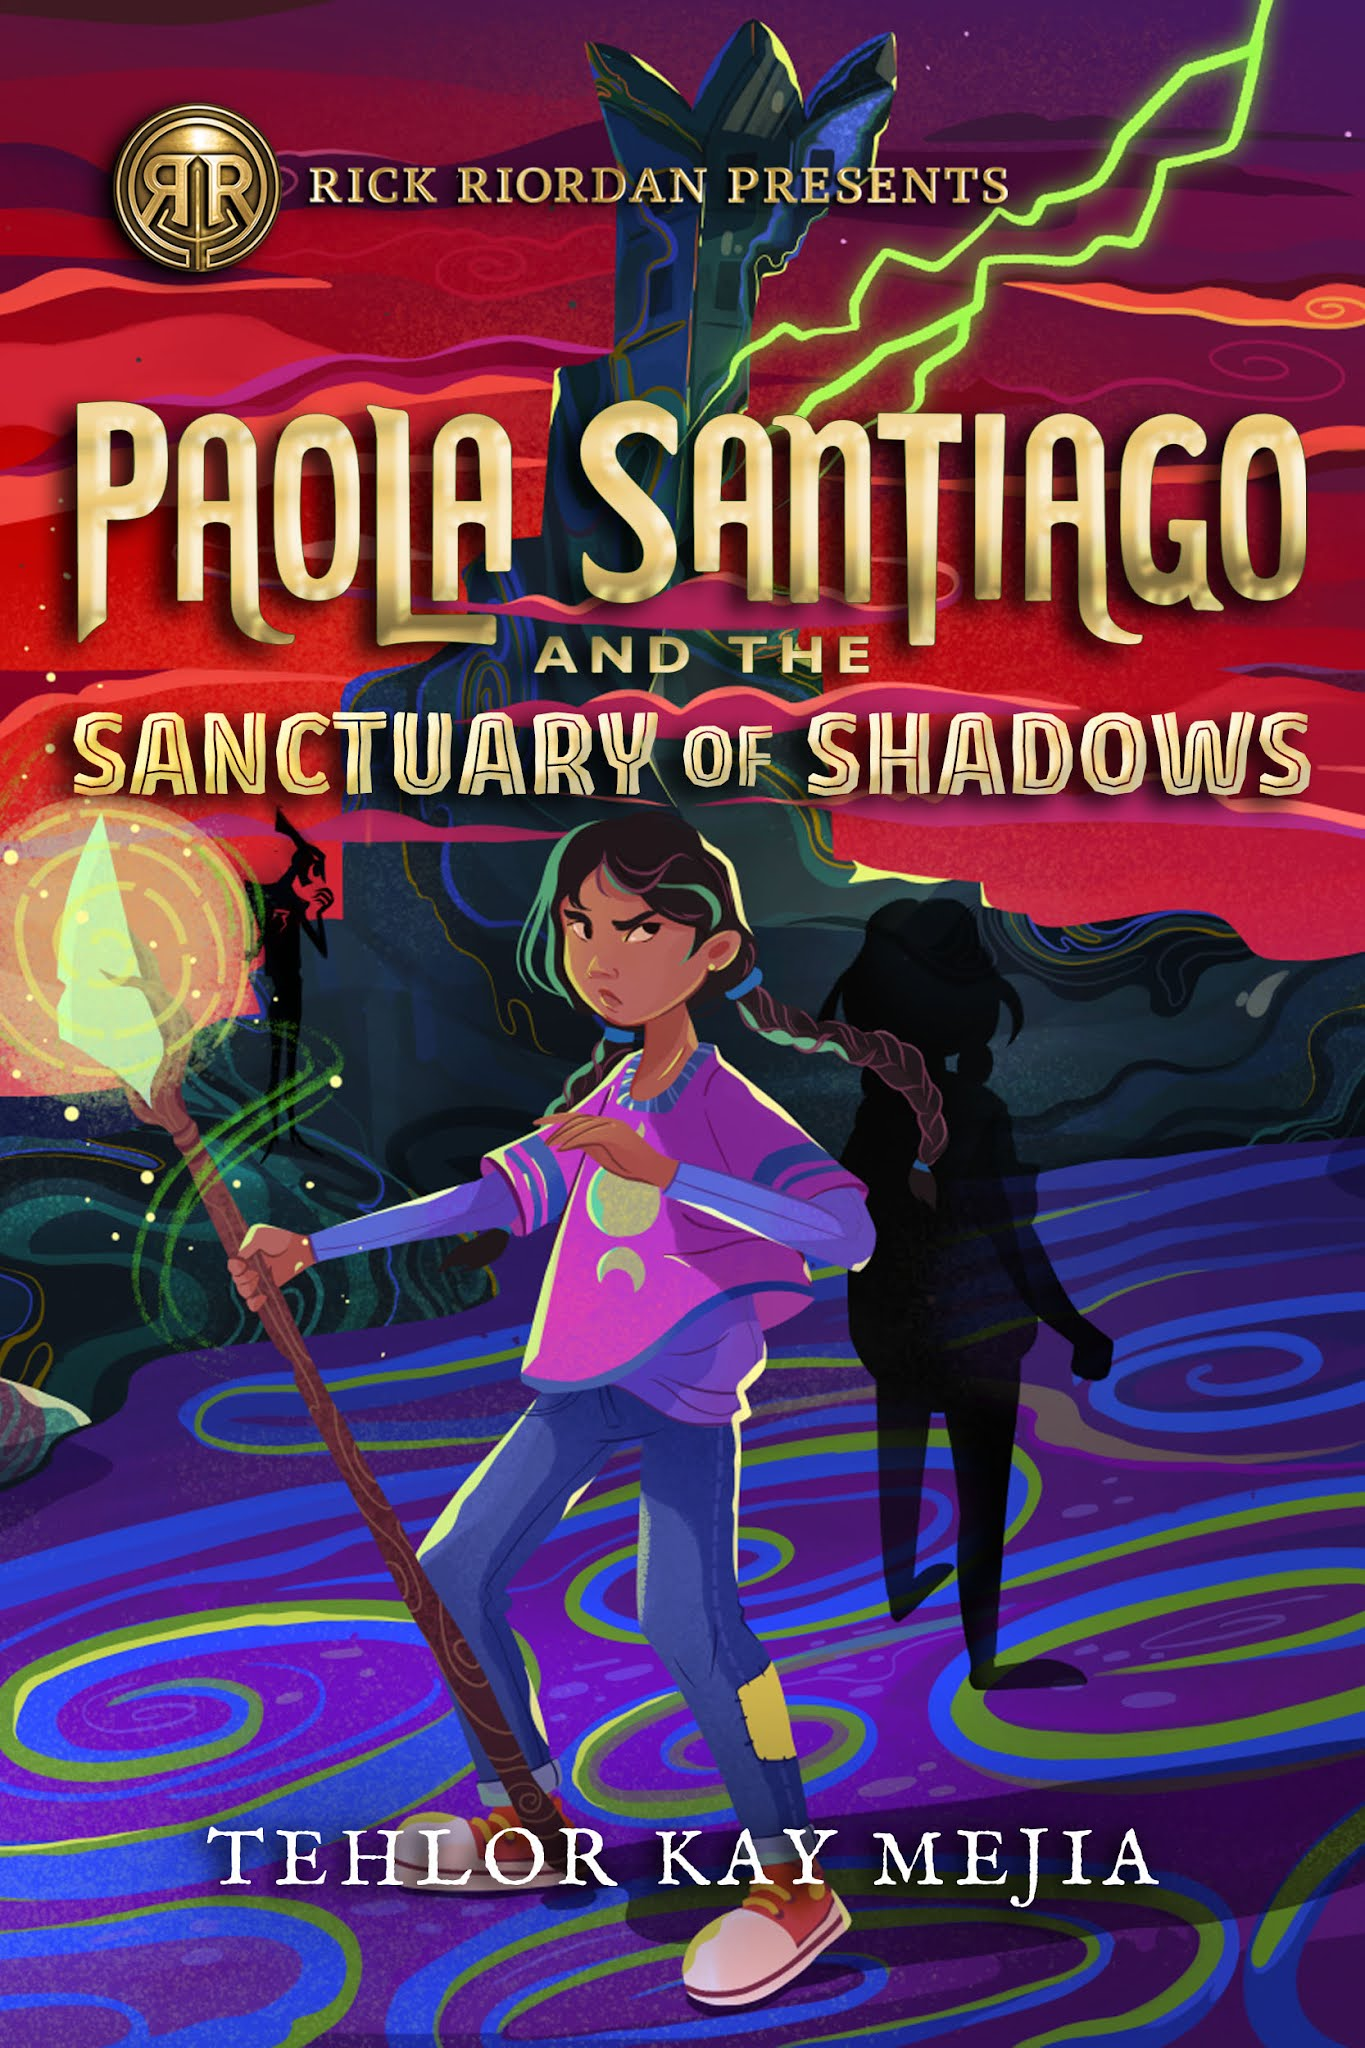 Paola Santiago and the Sanctuary of Shadows by Tehlor Kay Mejia